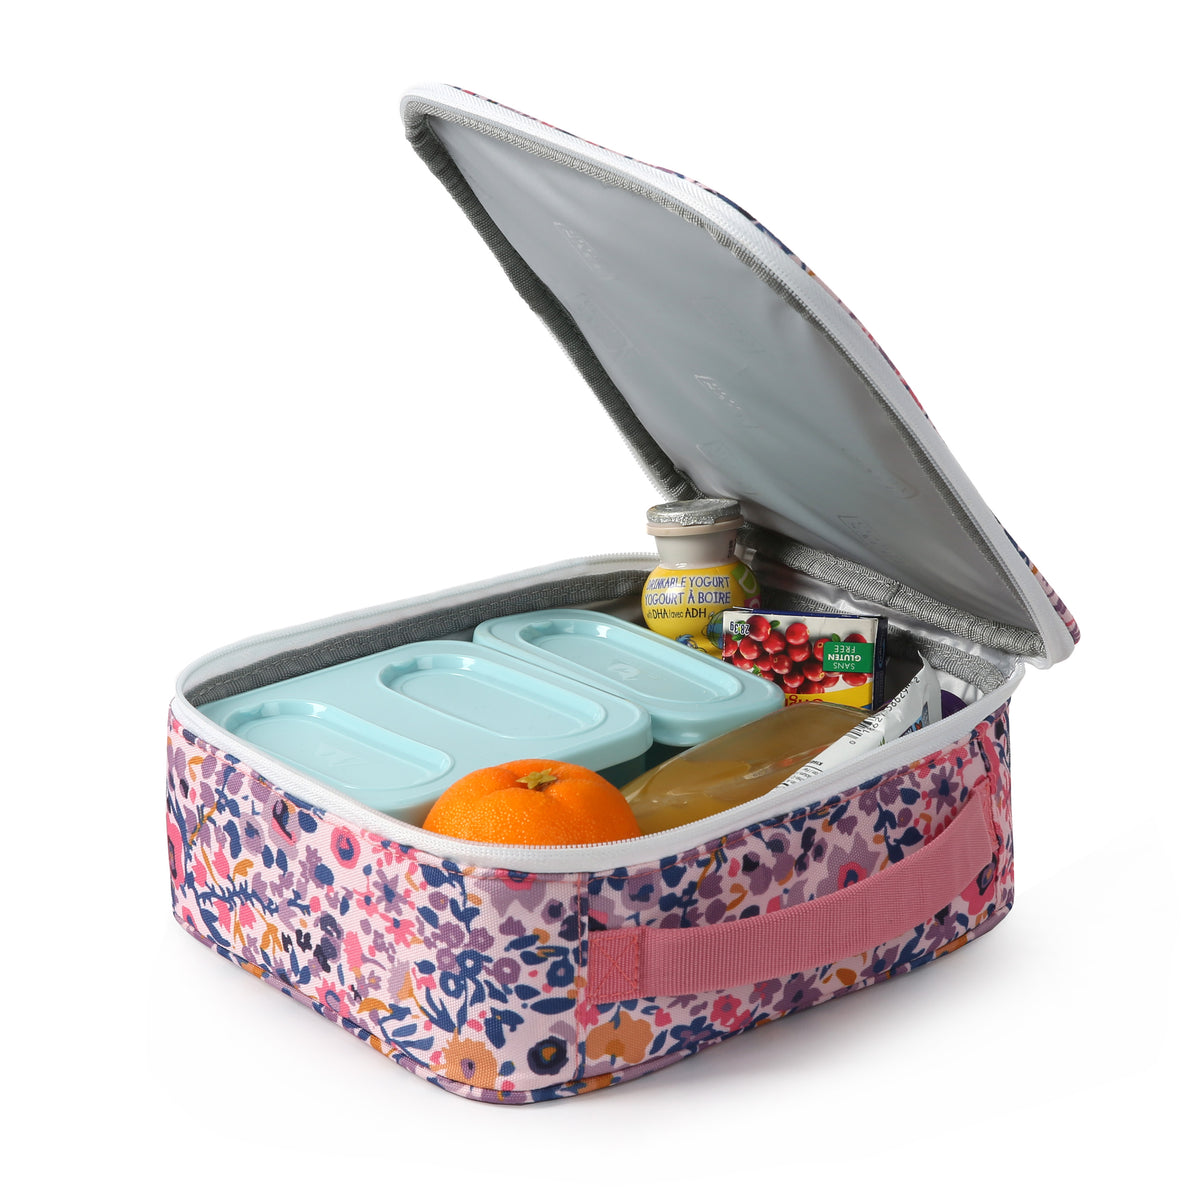 Arctic Zone® Classics Lunch Box - Floral - open propped